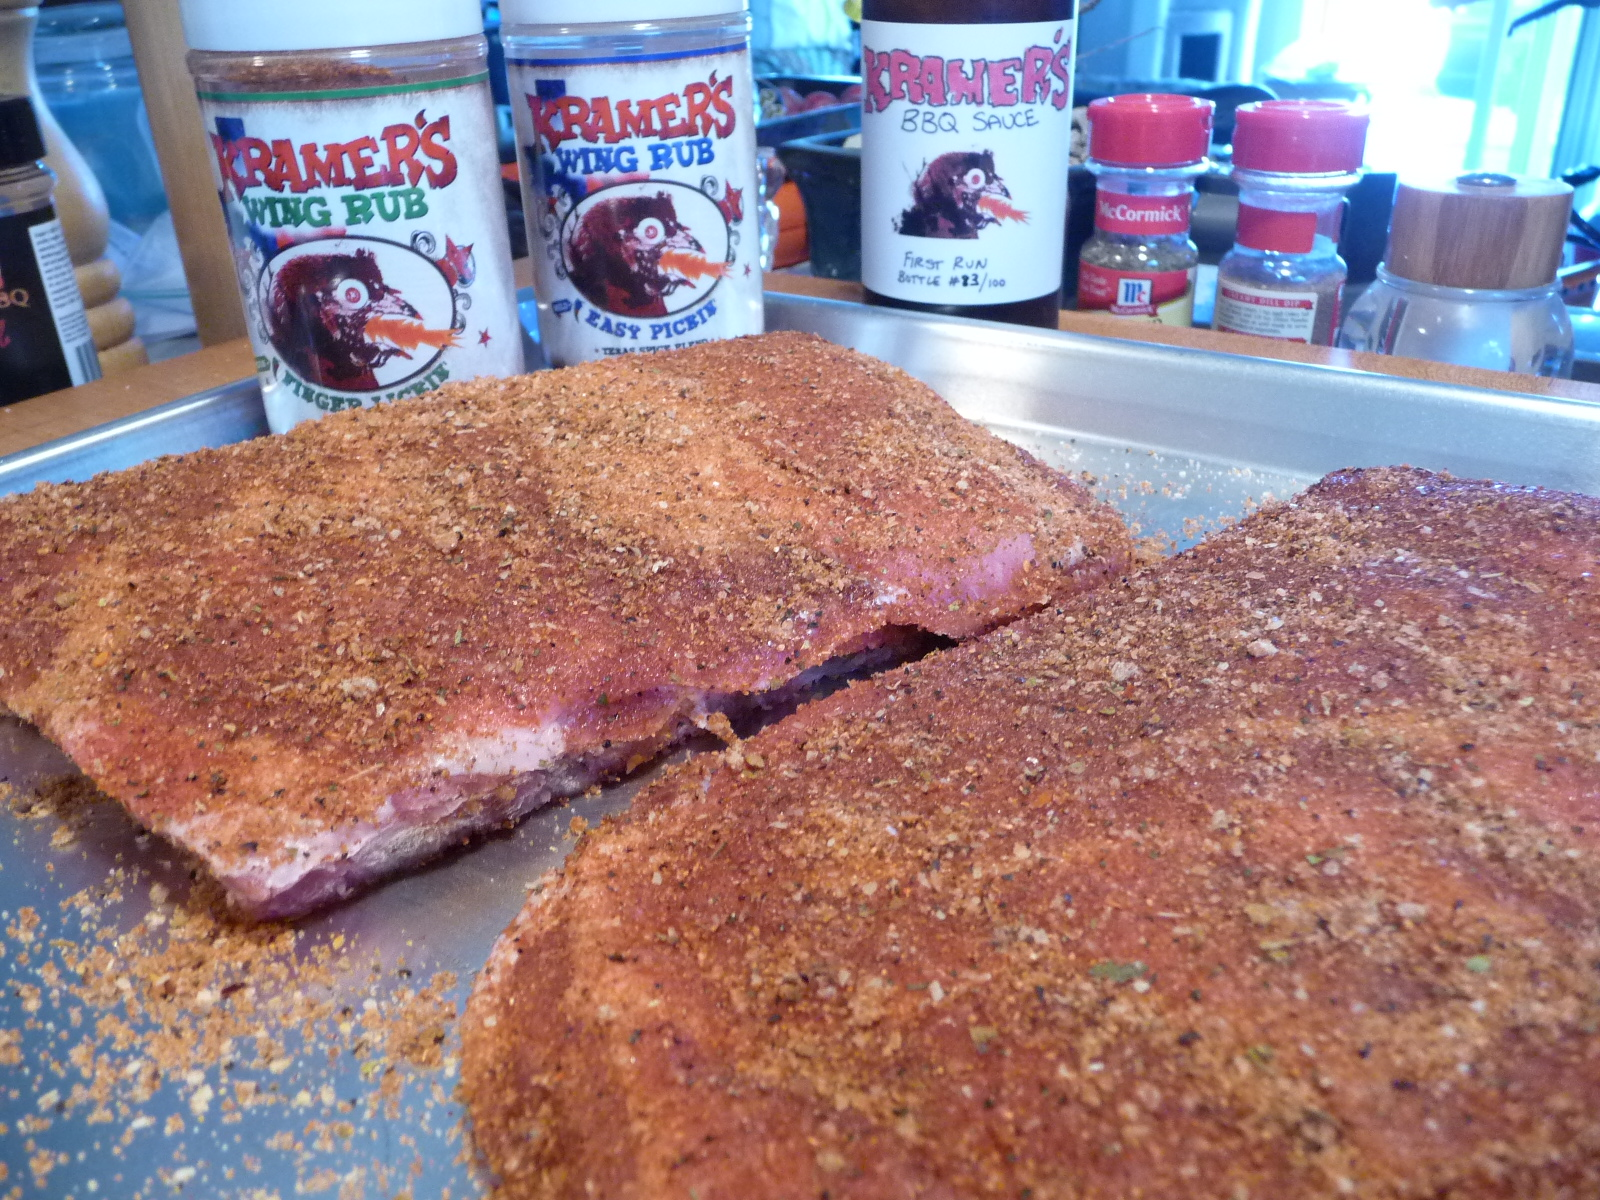 Ribs rubbed with Kramers Rubs - Finger Lickin and Easy Pickin